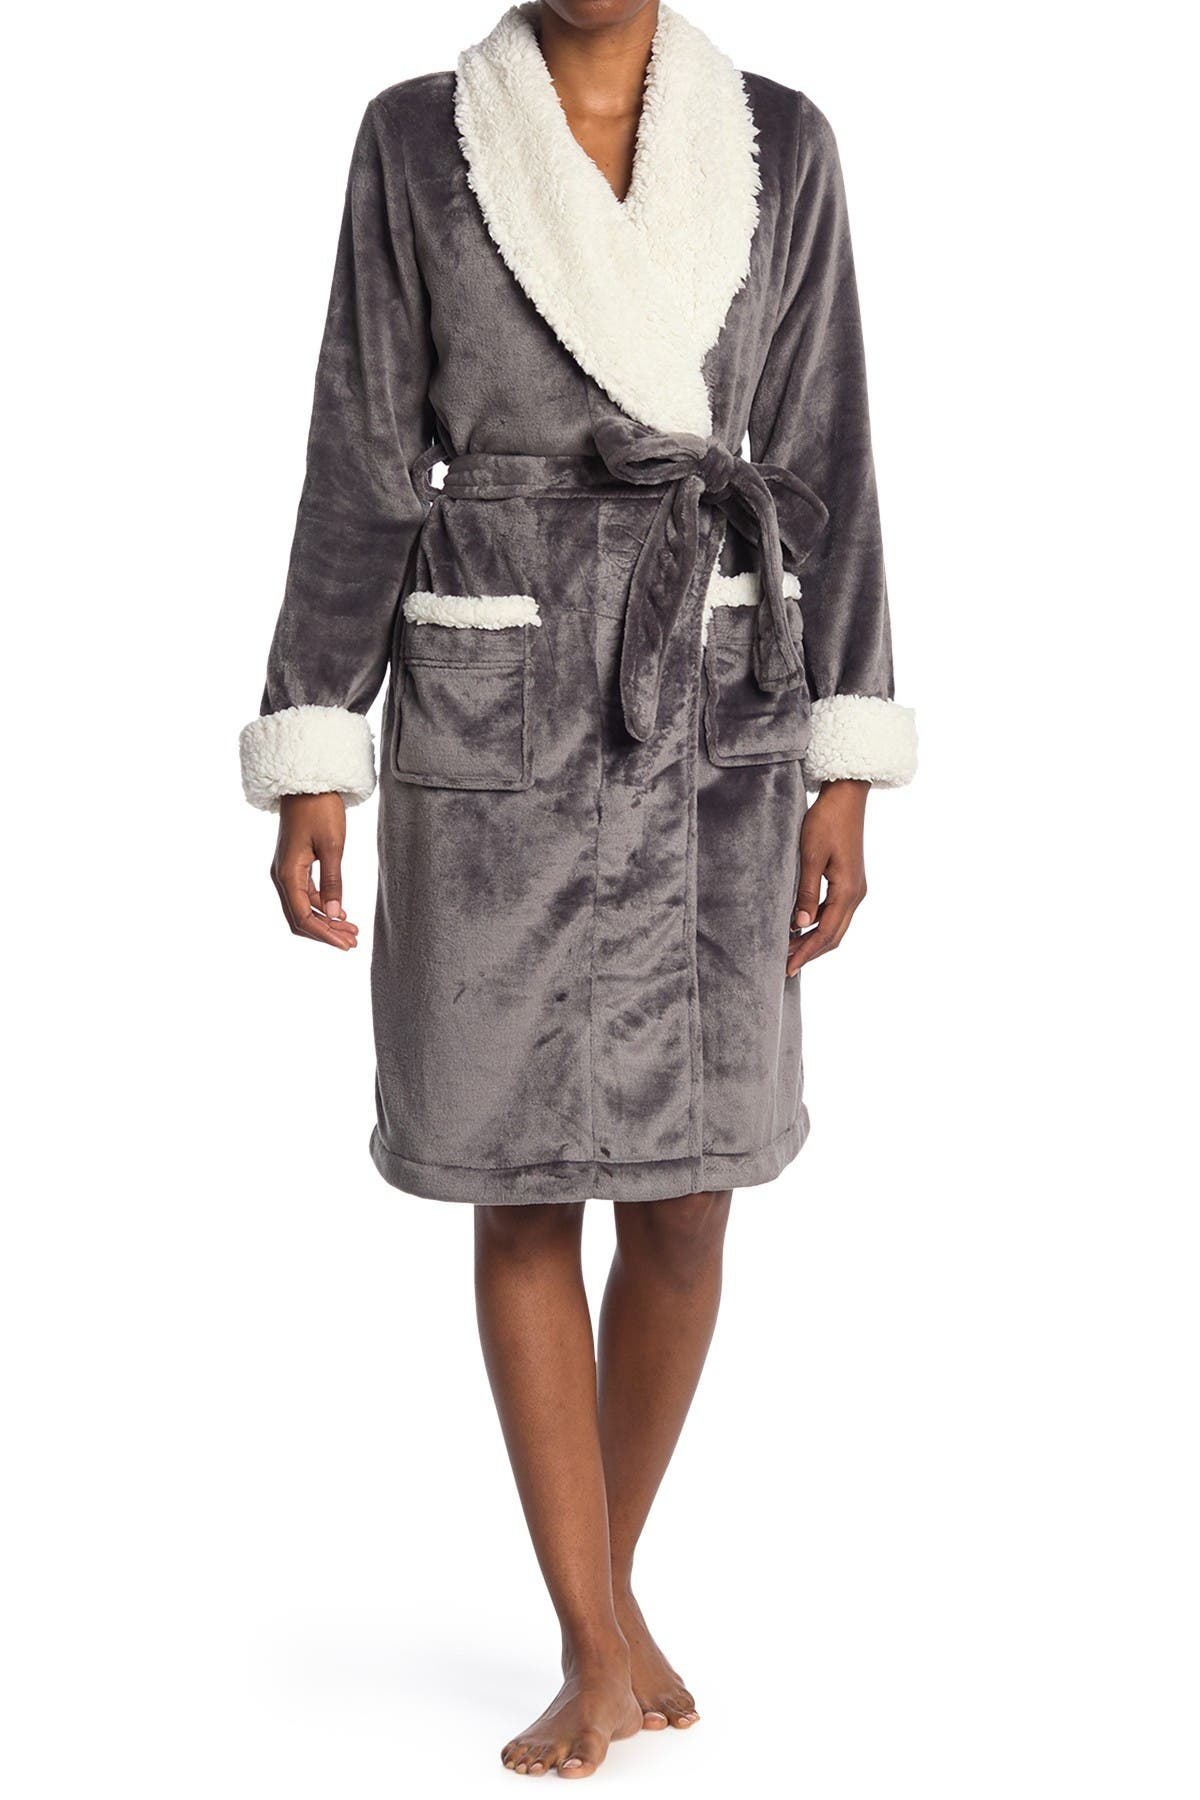 Image of shimera FUR lined mid length robe